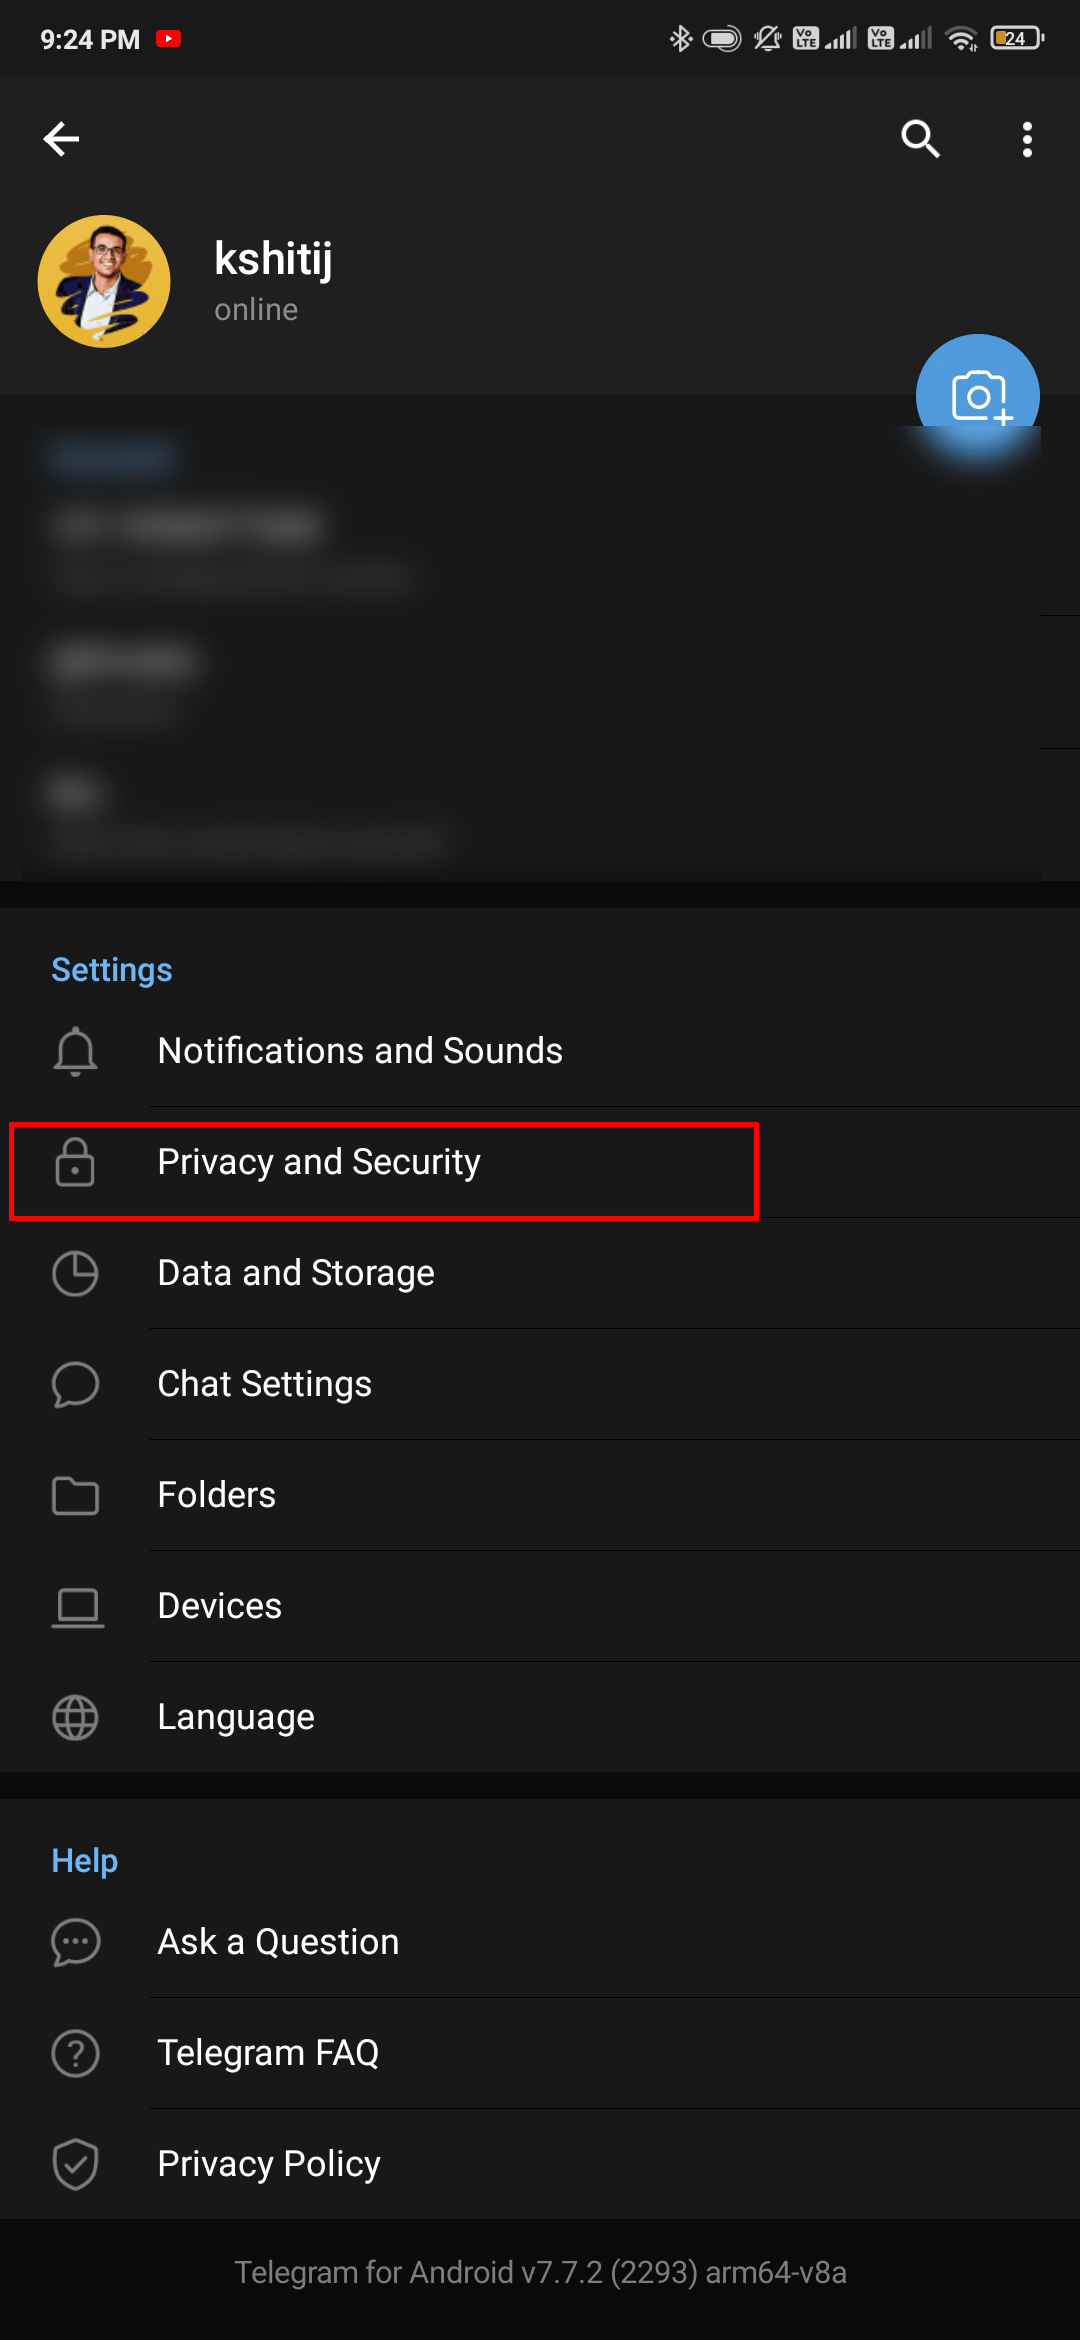 tap on privacy and security